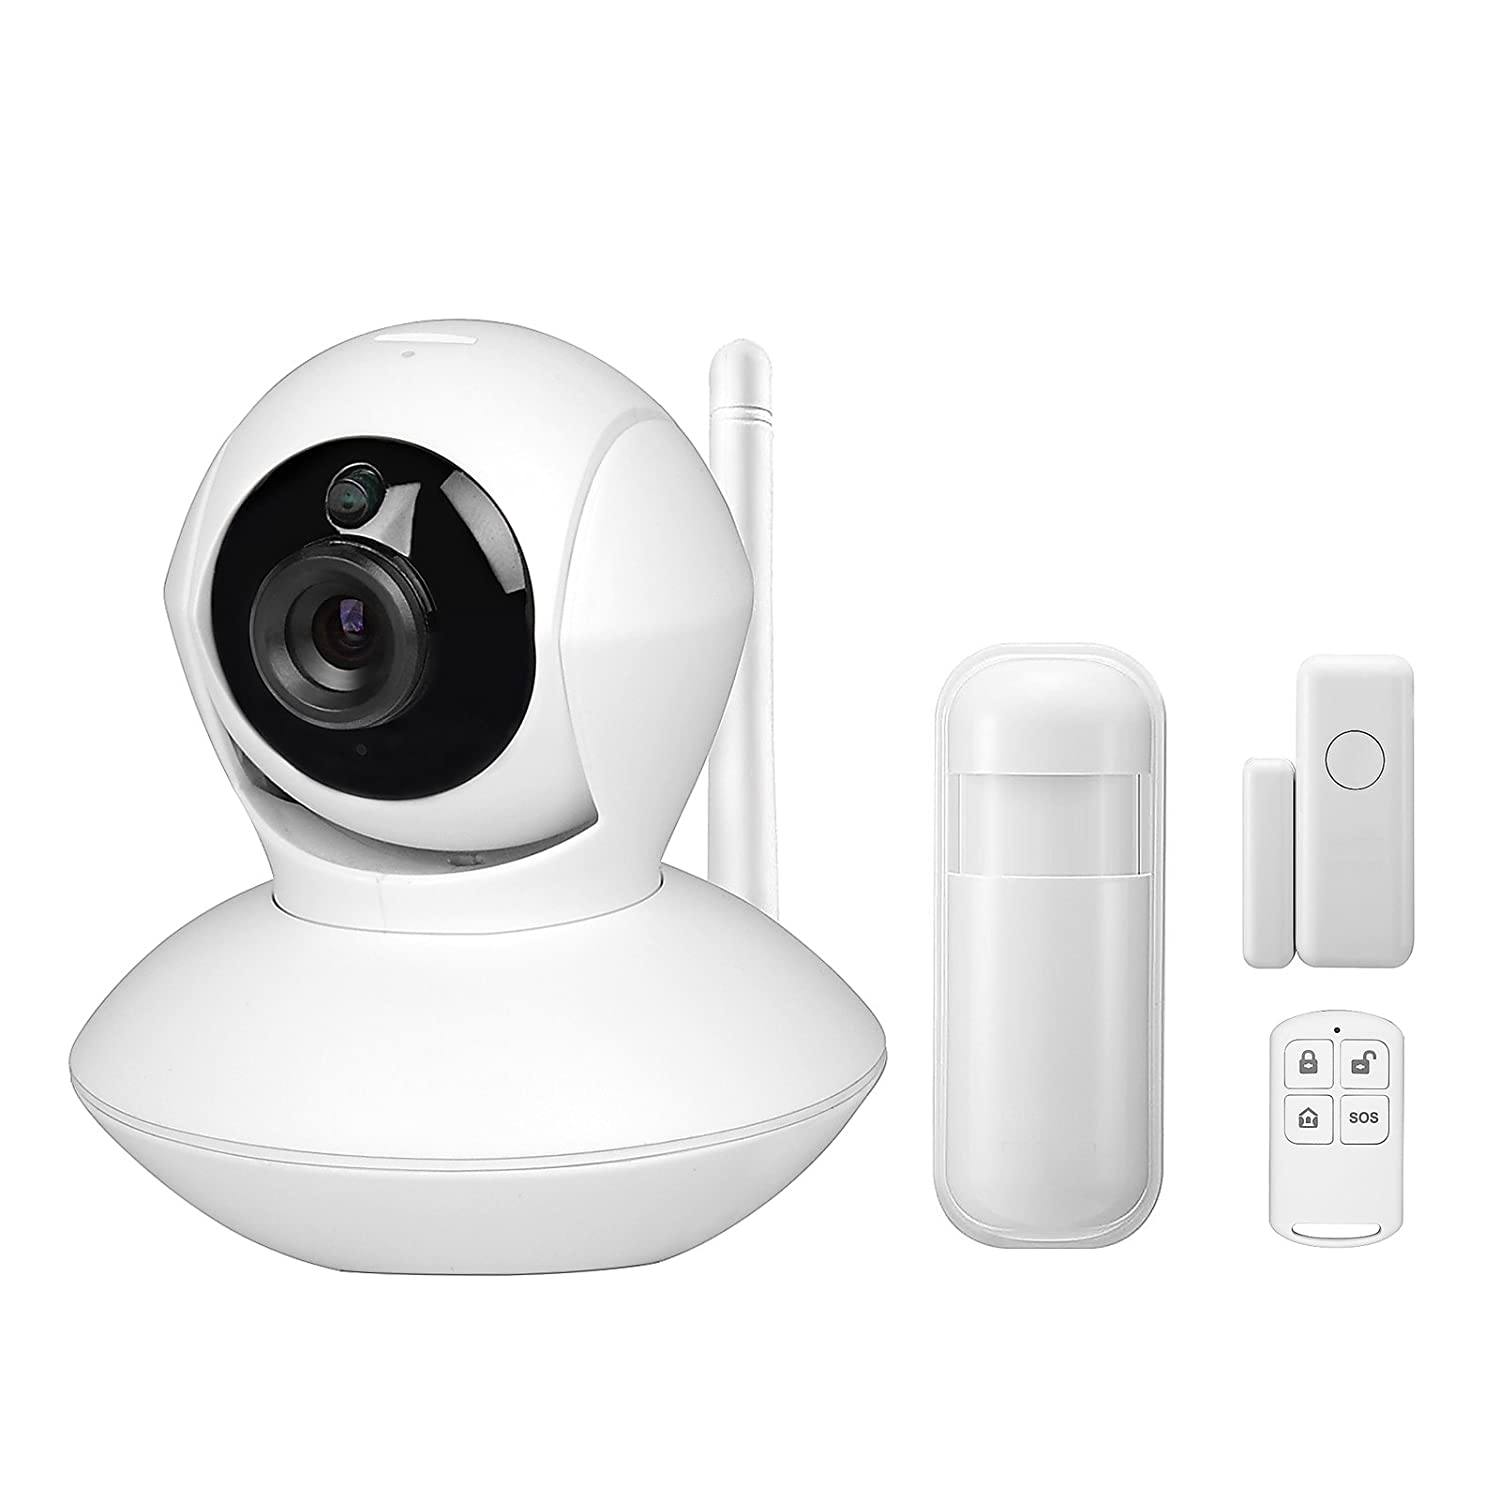 TSSS Komplettes drahtloses Home Security: Amazon.de: Kamera